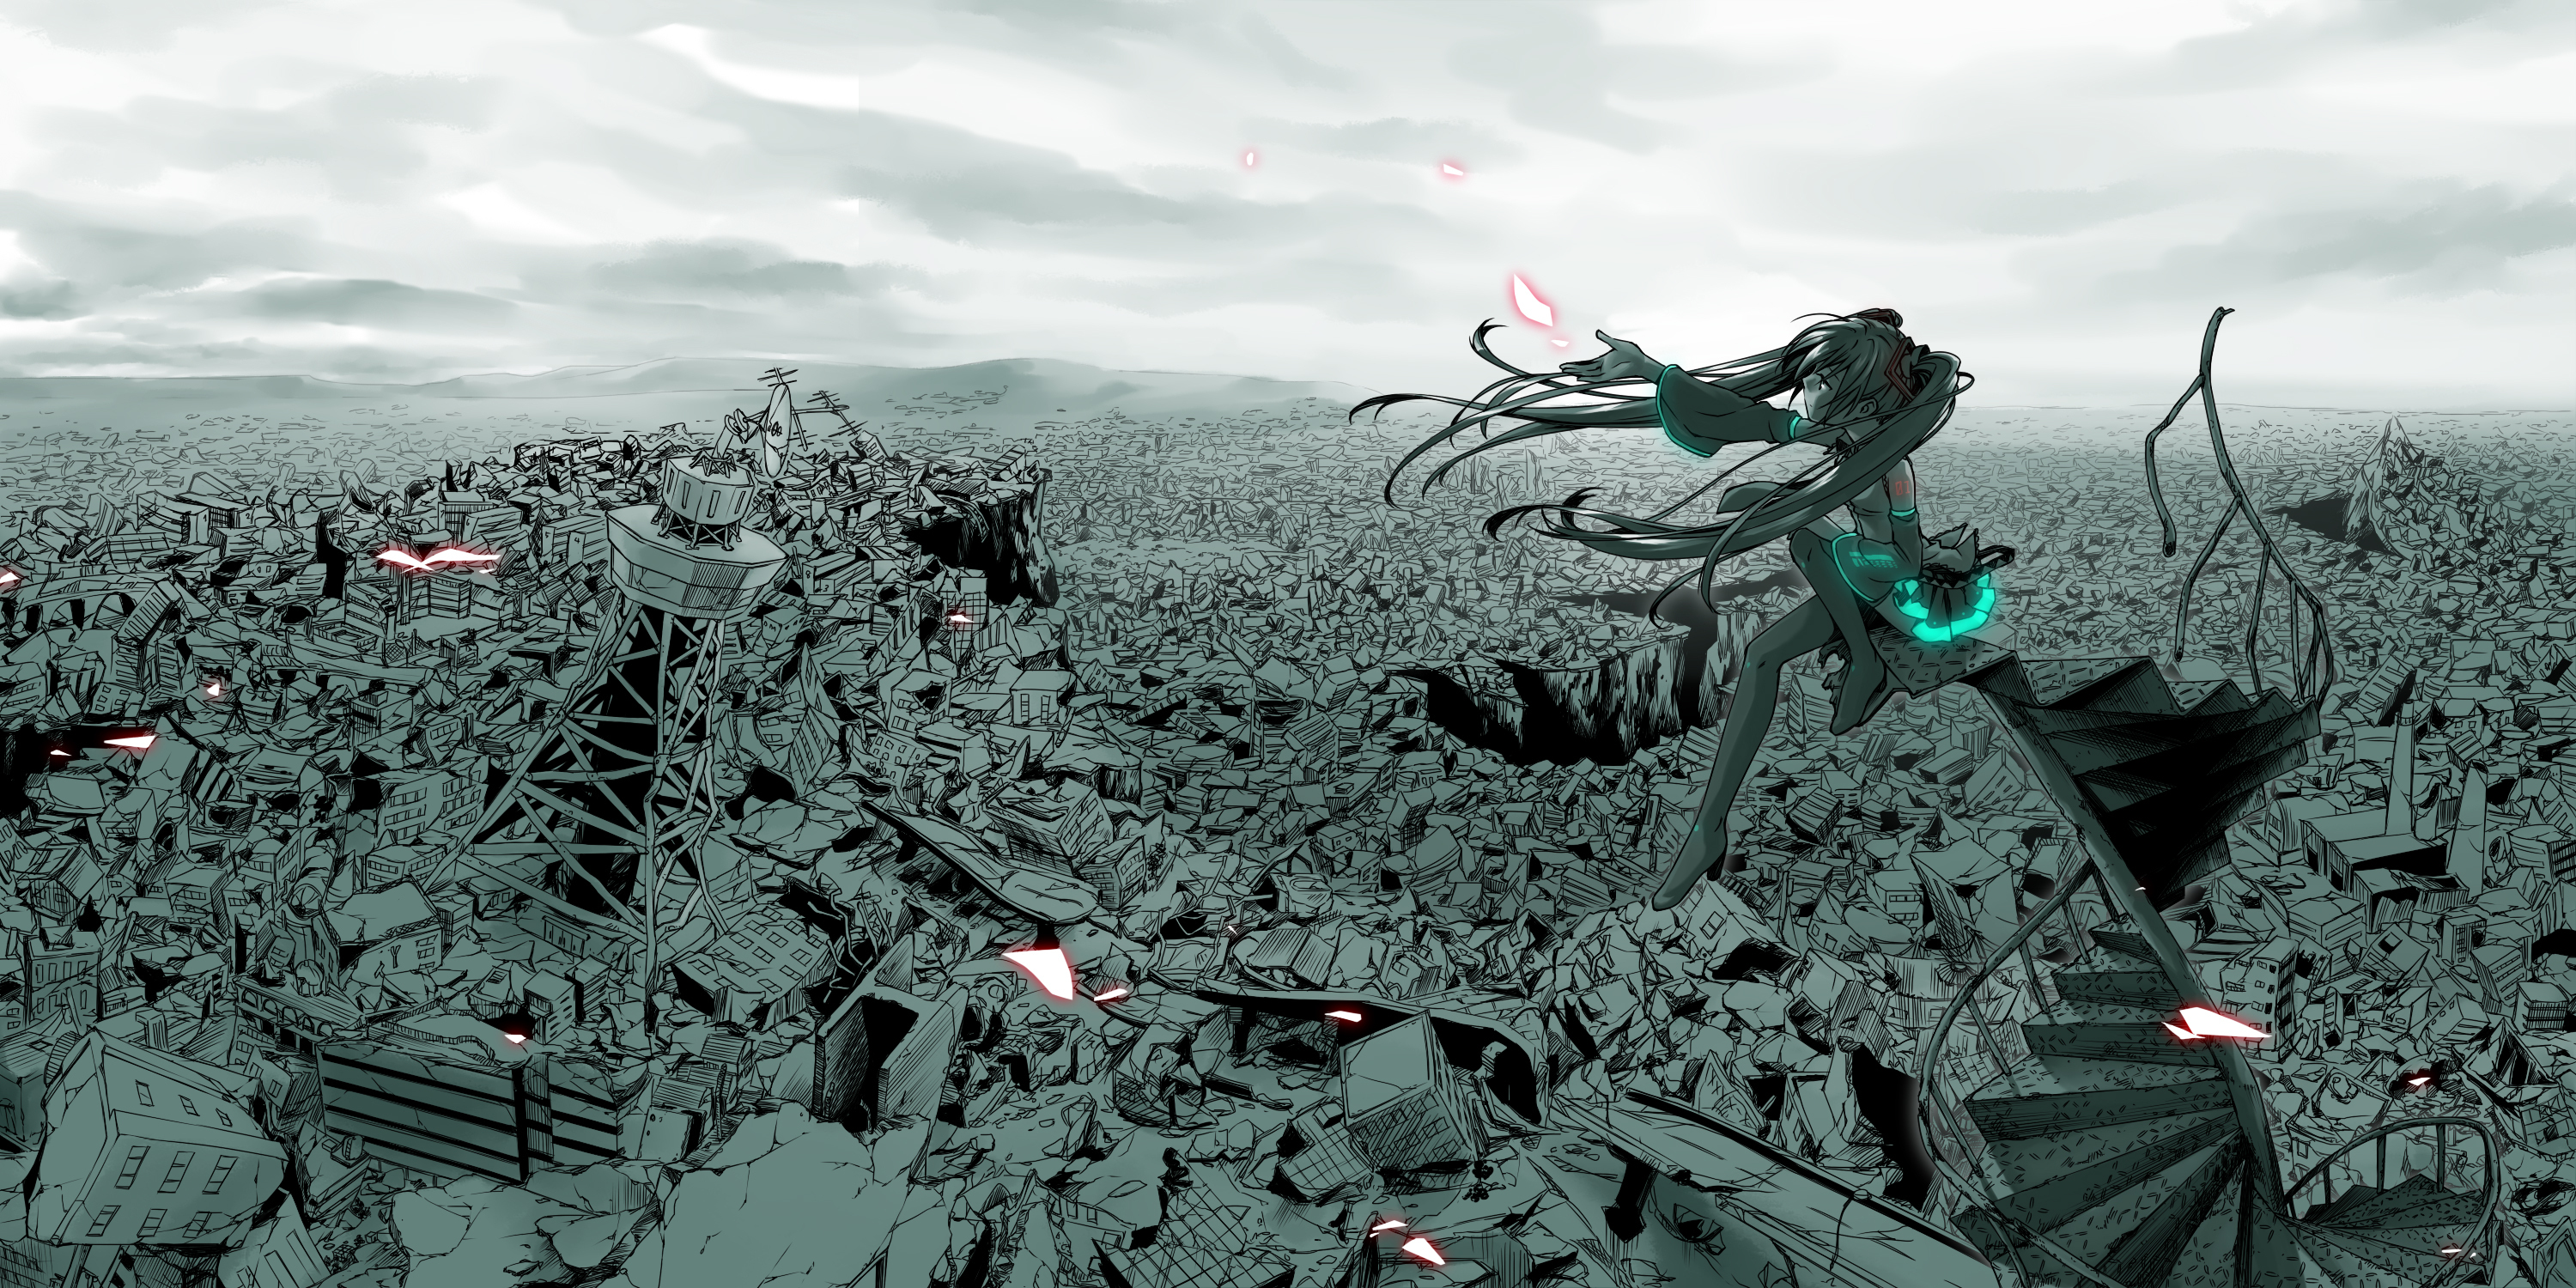 Wallpaper download City after the disaster (Hatsune Miku)